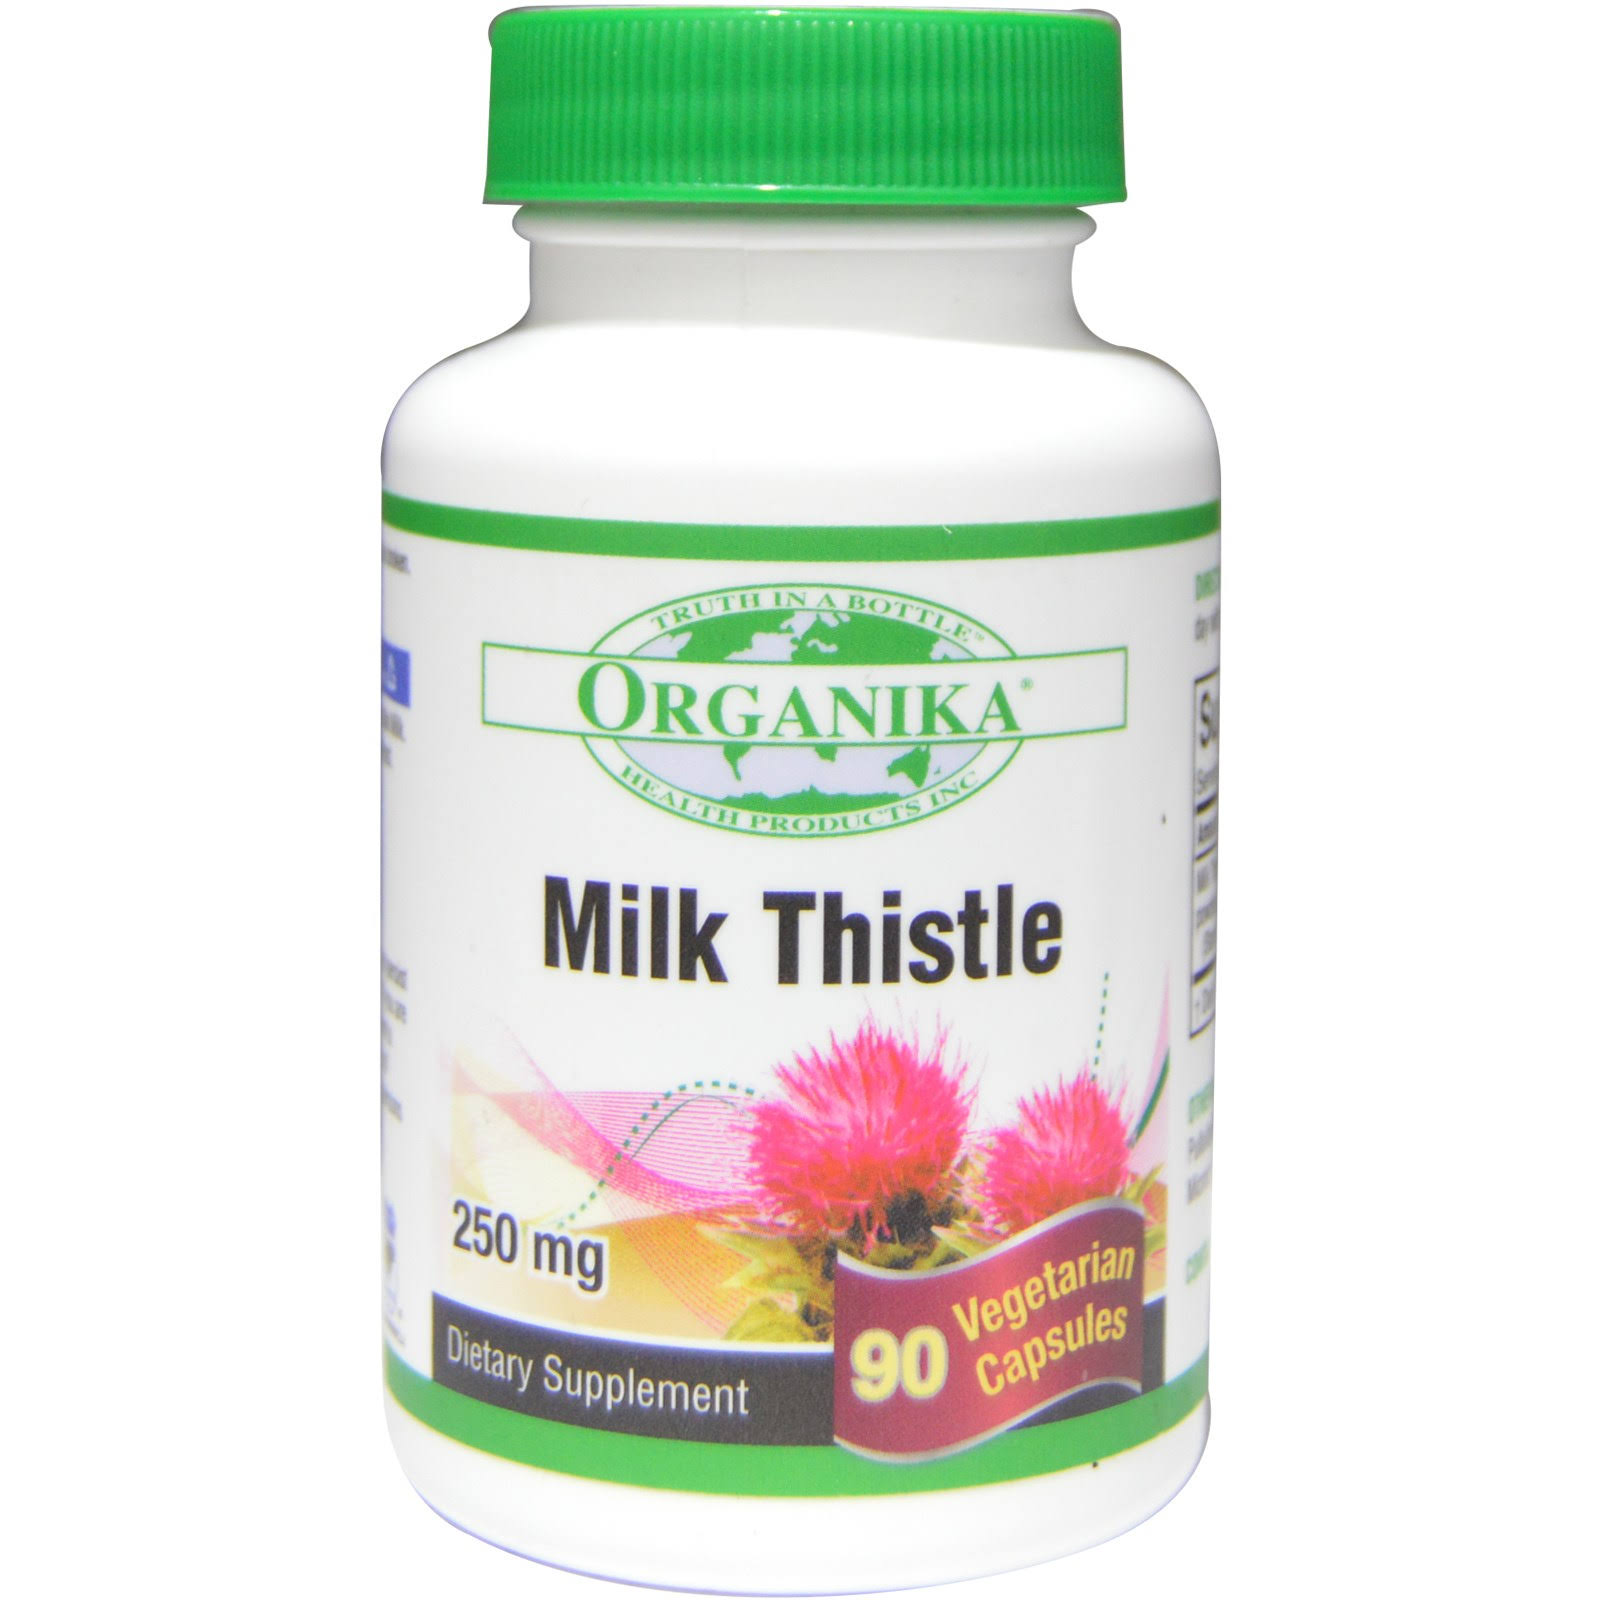 Organika, Milk Thistle, 250 mg, 90 Veggie Caps